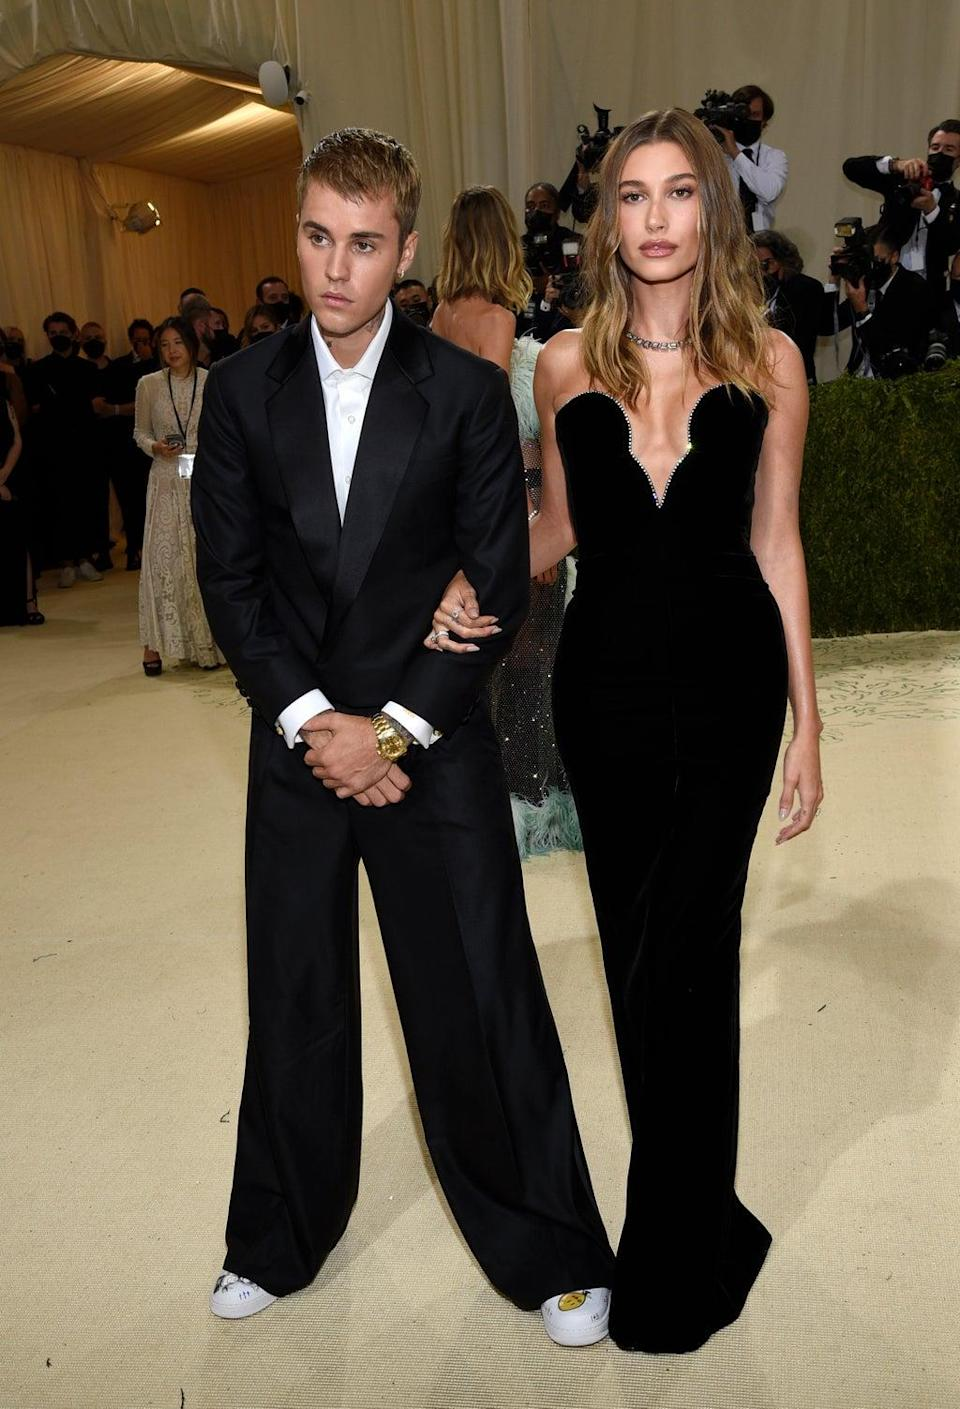 Justin and Hailey Bieber looked dapper in sophisticated outfits (Evan Agostini/Invision/AP) (AP)